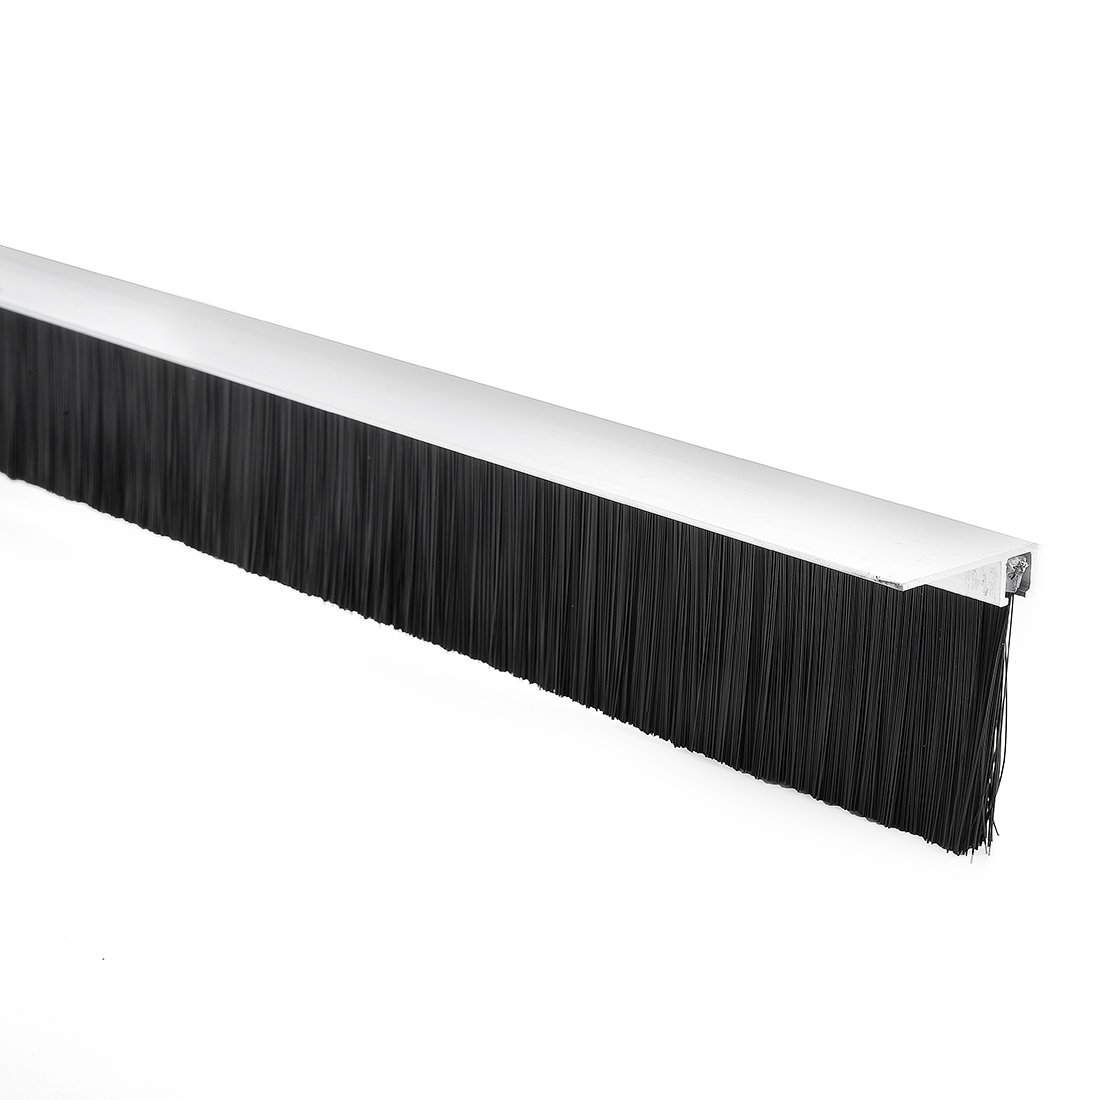 uxcell Door Bottom Sweep F-Shape Aluminum Alloy Base with 1.6-inch Black Nylon Brush 39-inch x 2-inch